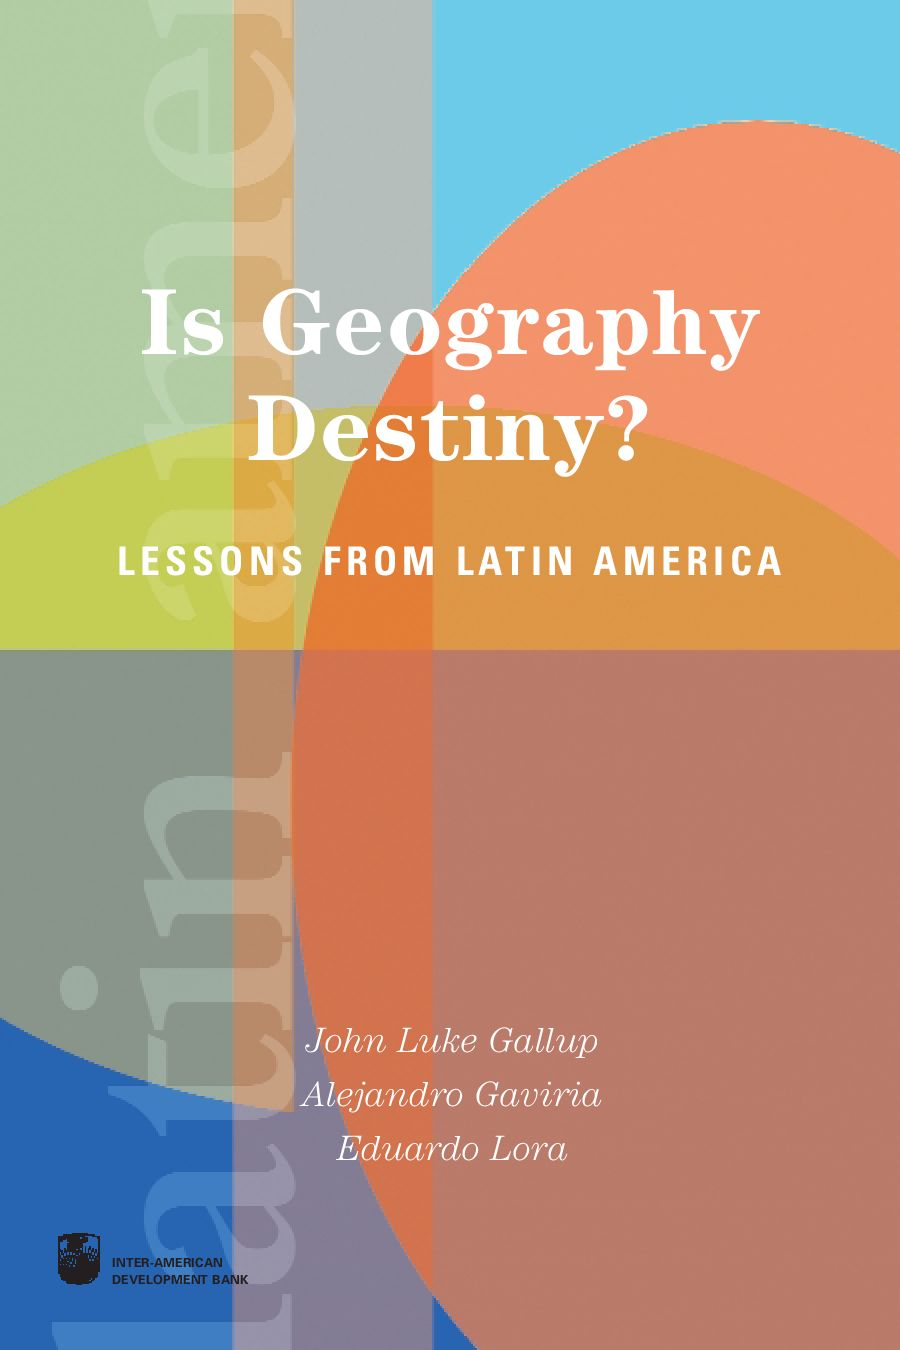 geography is destiny Although is geography destiny rejects a determinist view that geography controls growth in latin american, it persuades the reader of the importance of geography in shaping the opportunities and constraints on economic change in the region it is at once an obvious story — of course geography molds outcomes — and a.